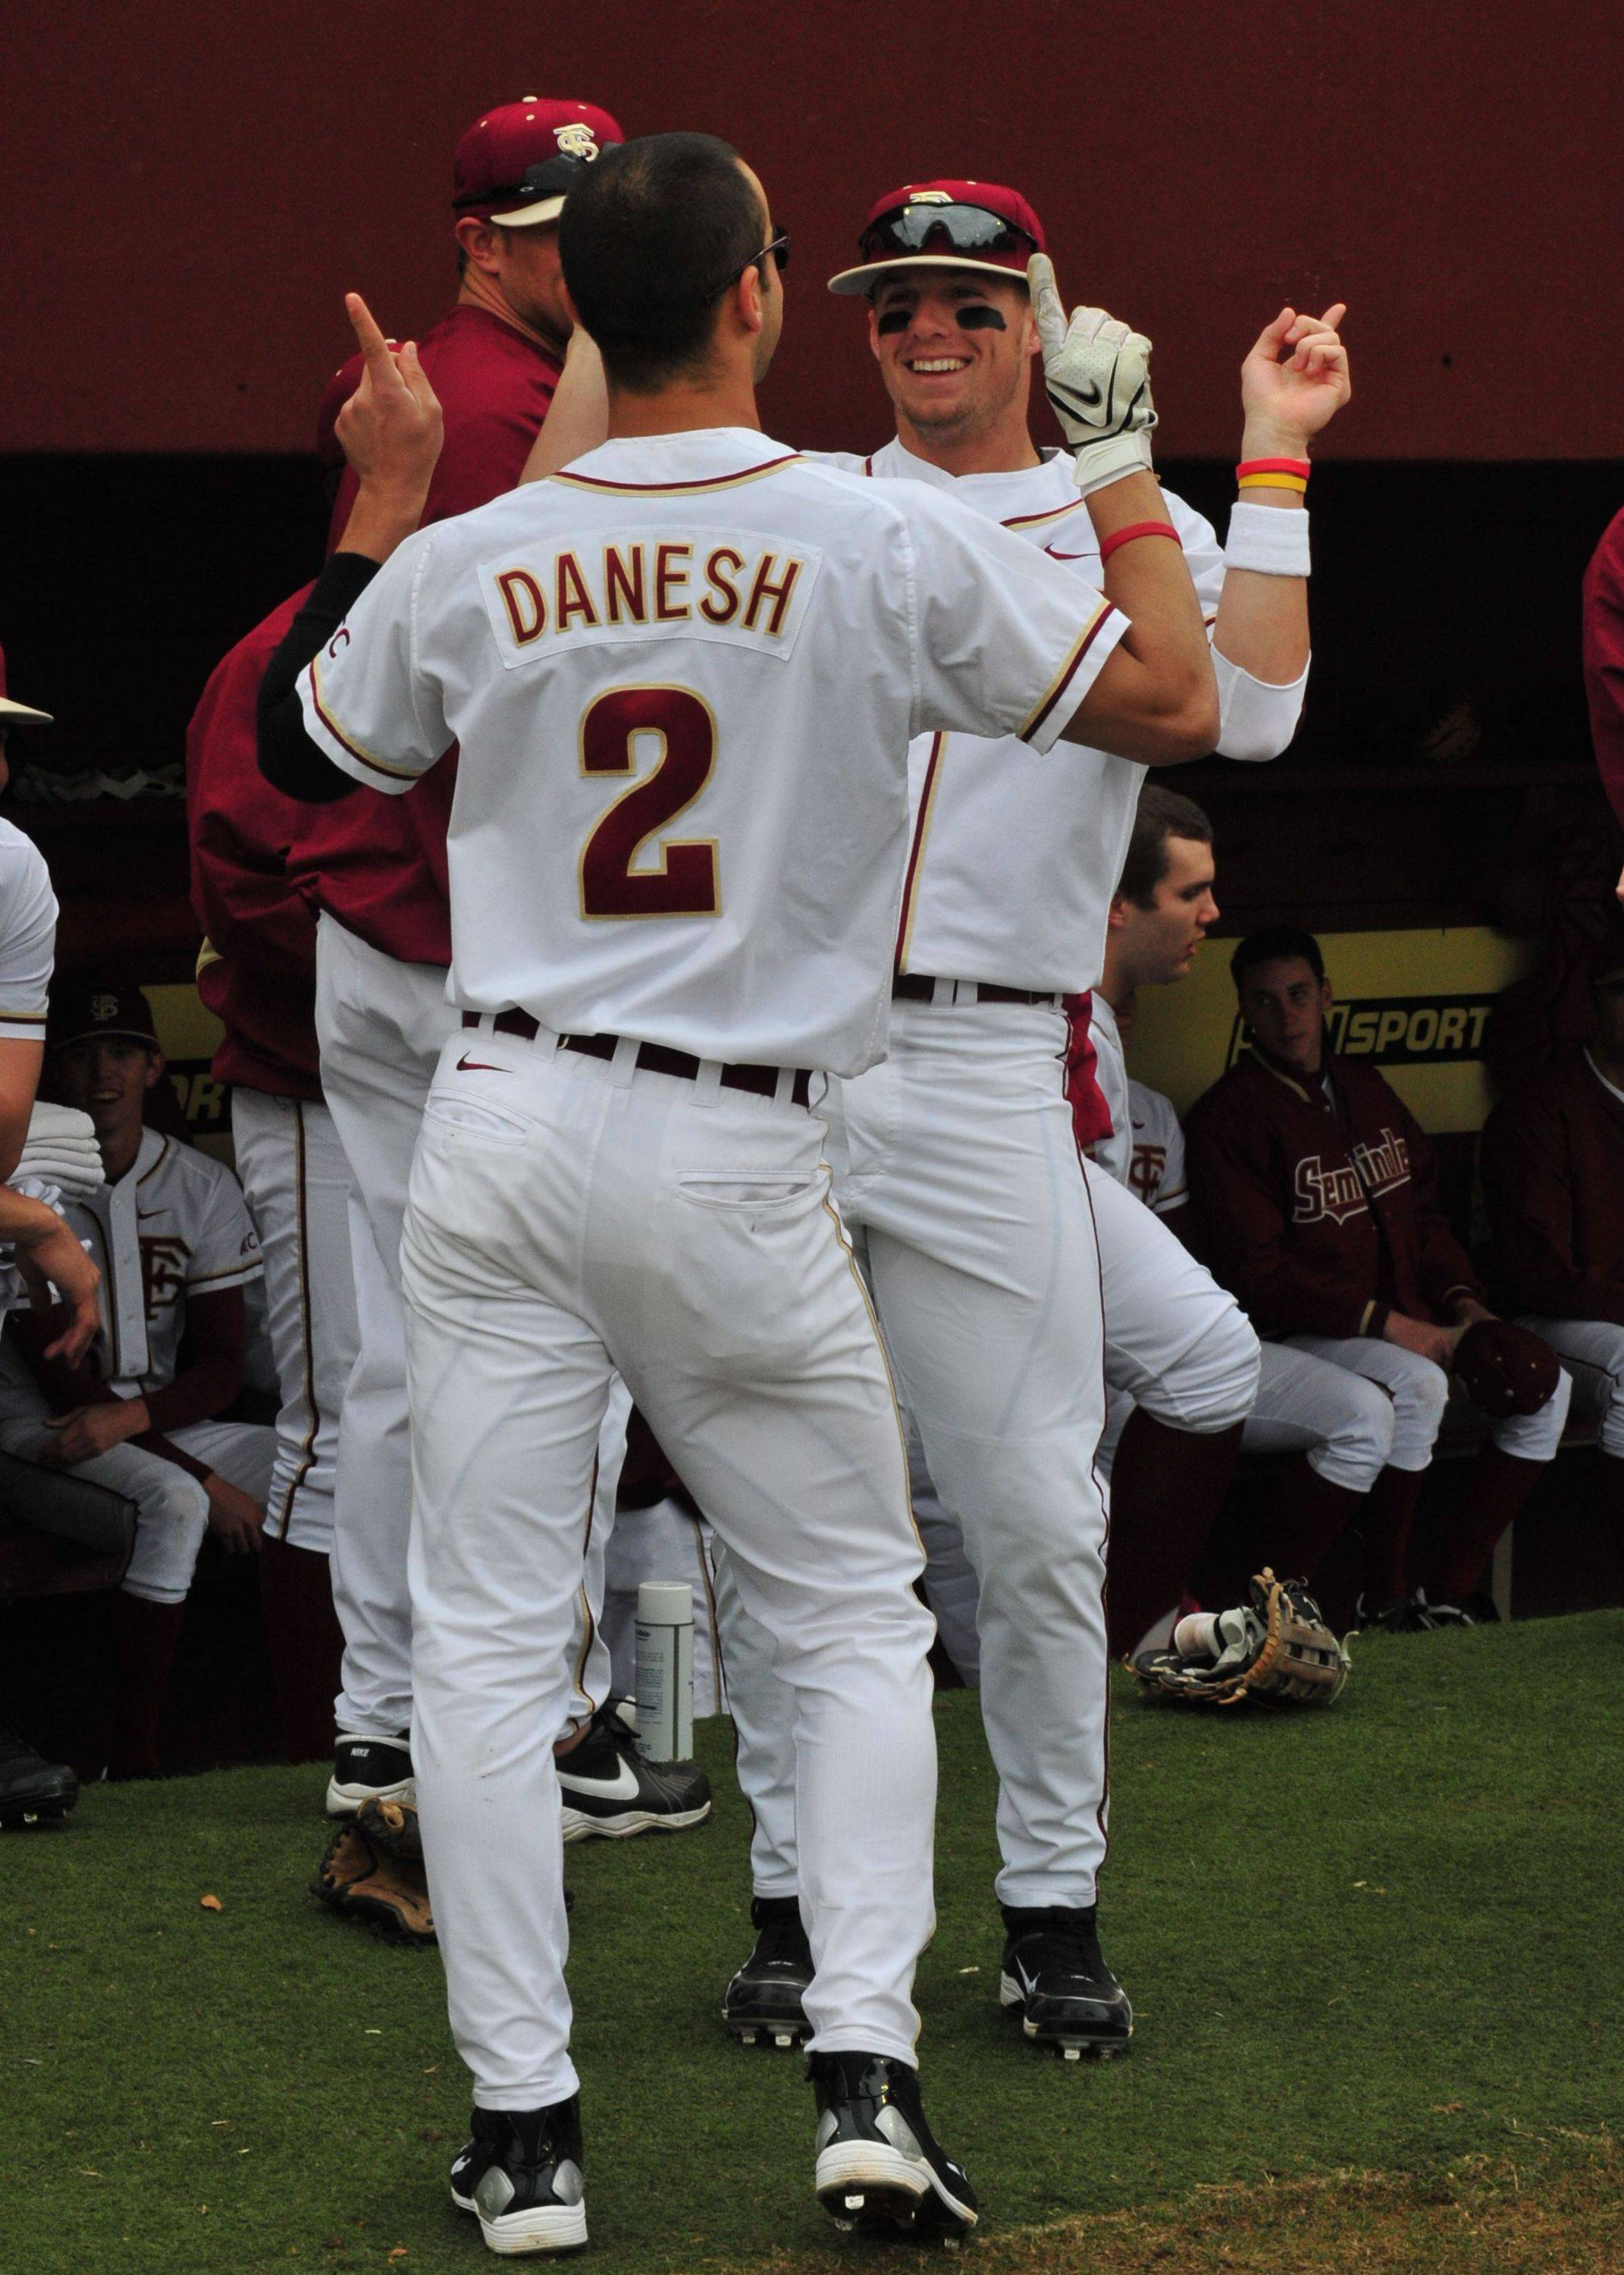 Ohmed Danesh and Tyler Holt show off their dance skills before the start of the game.